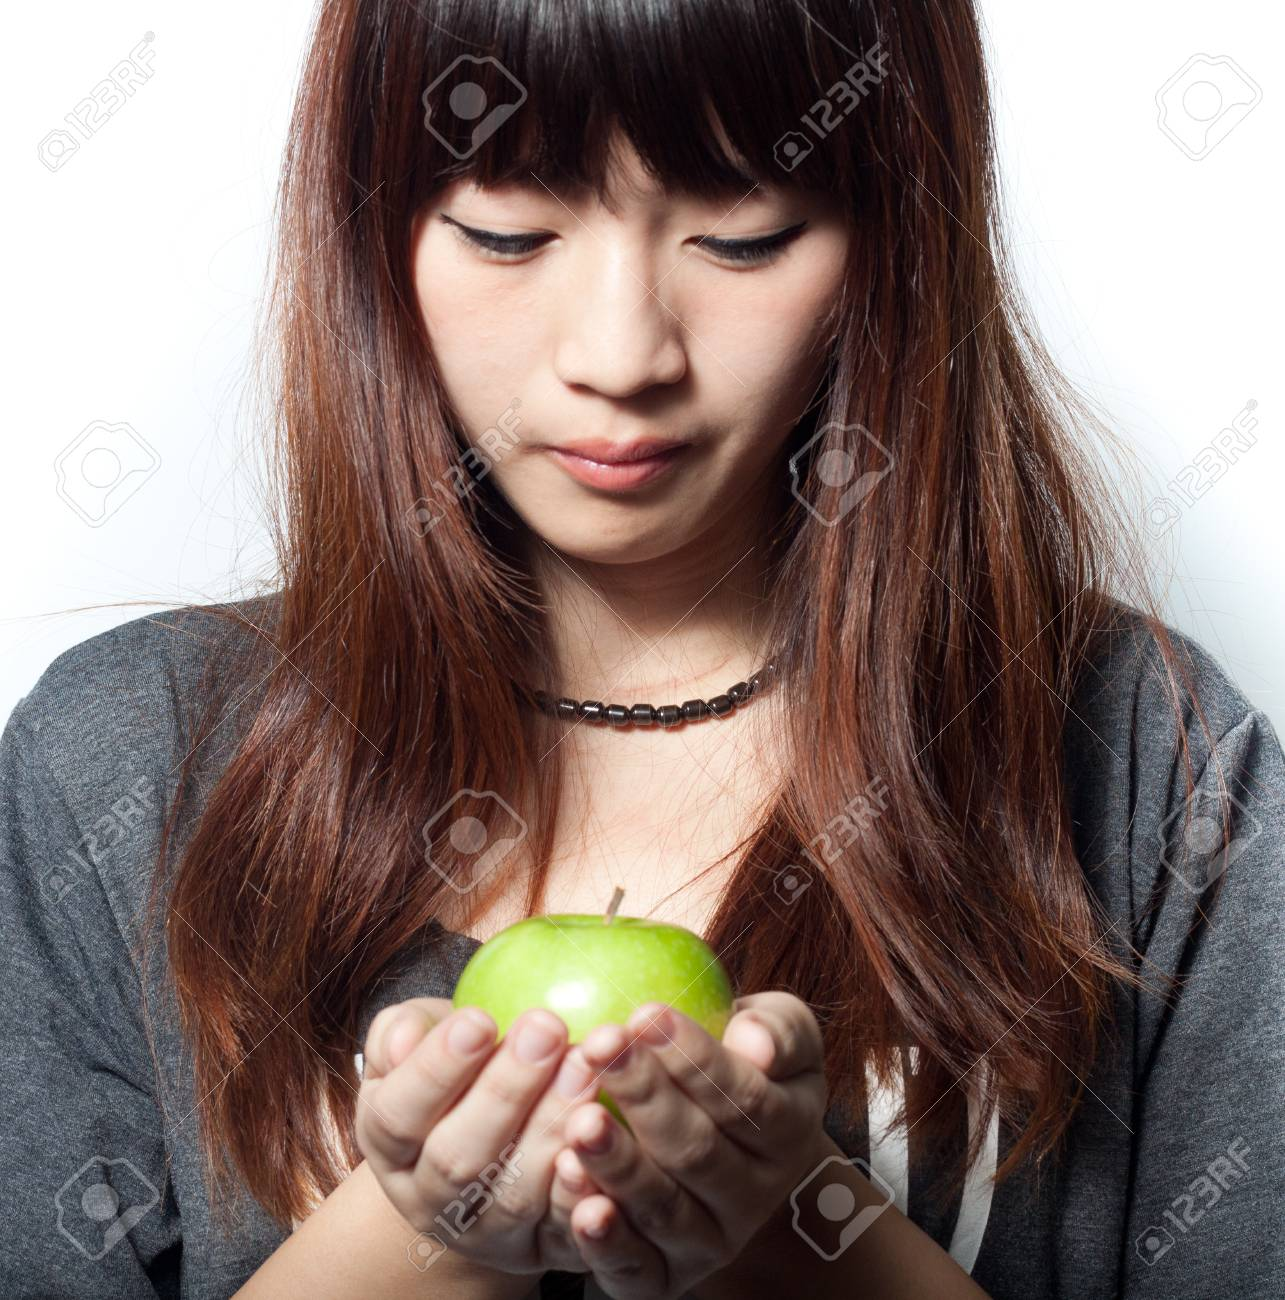 Young girl holding green apple Stock Photo - 15166132